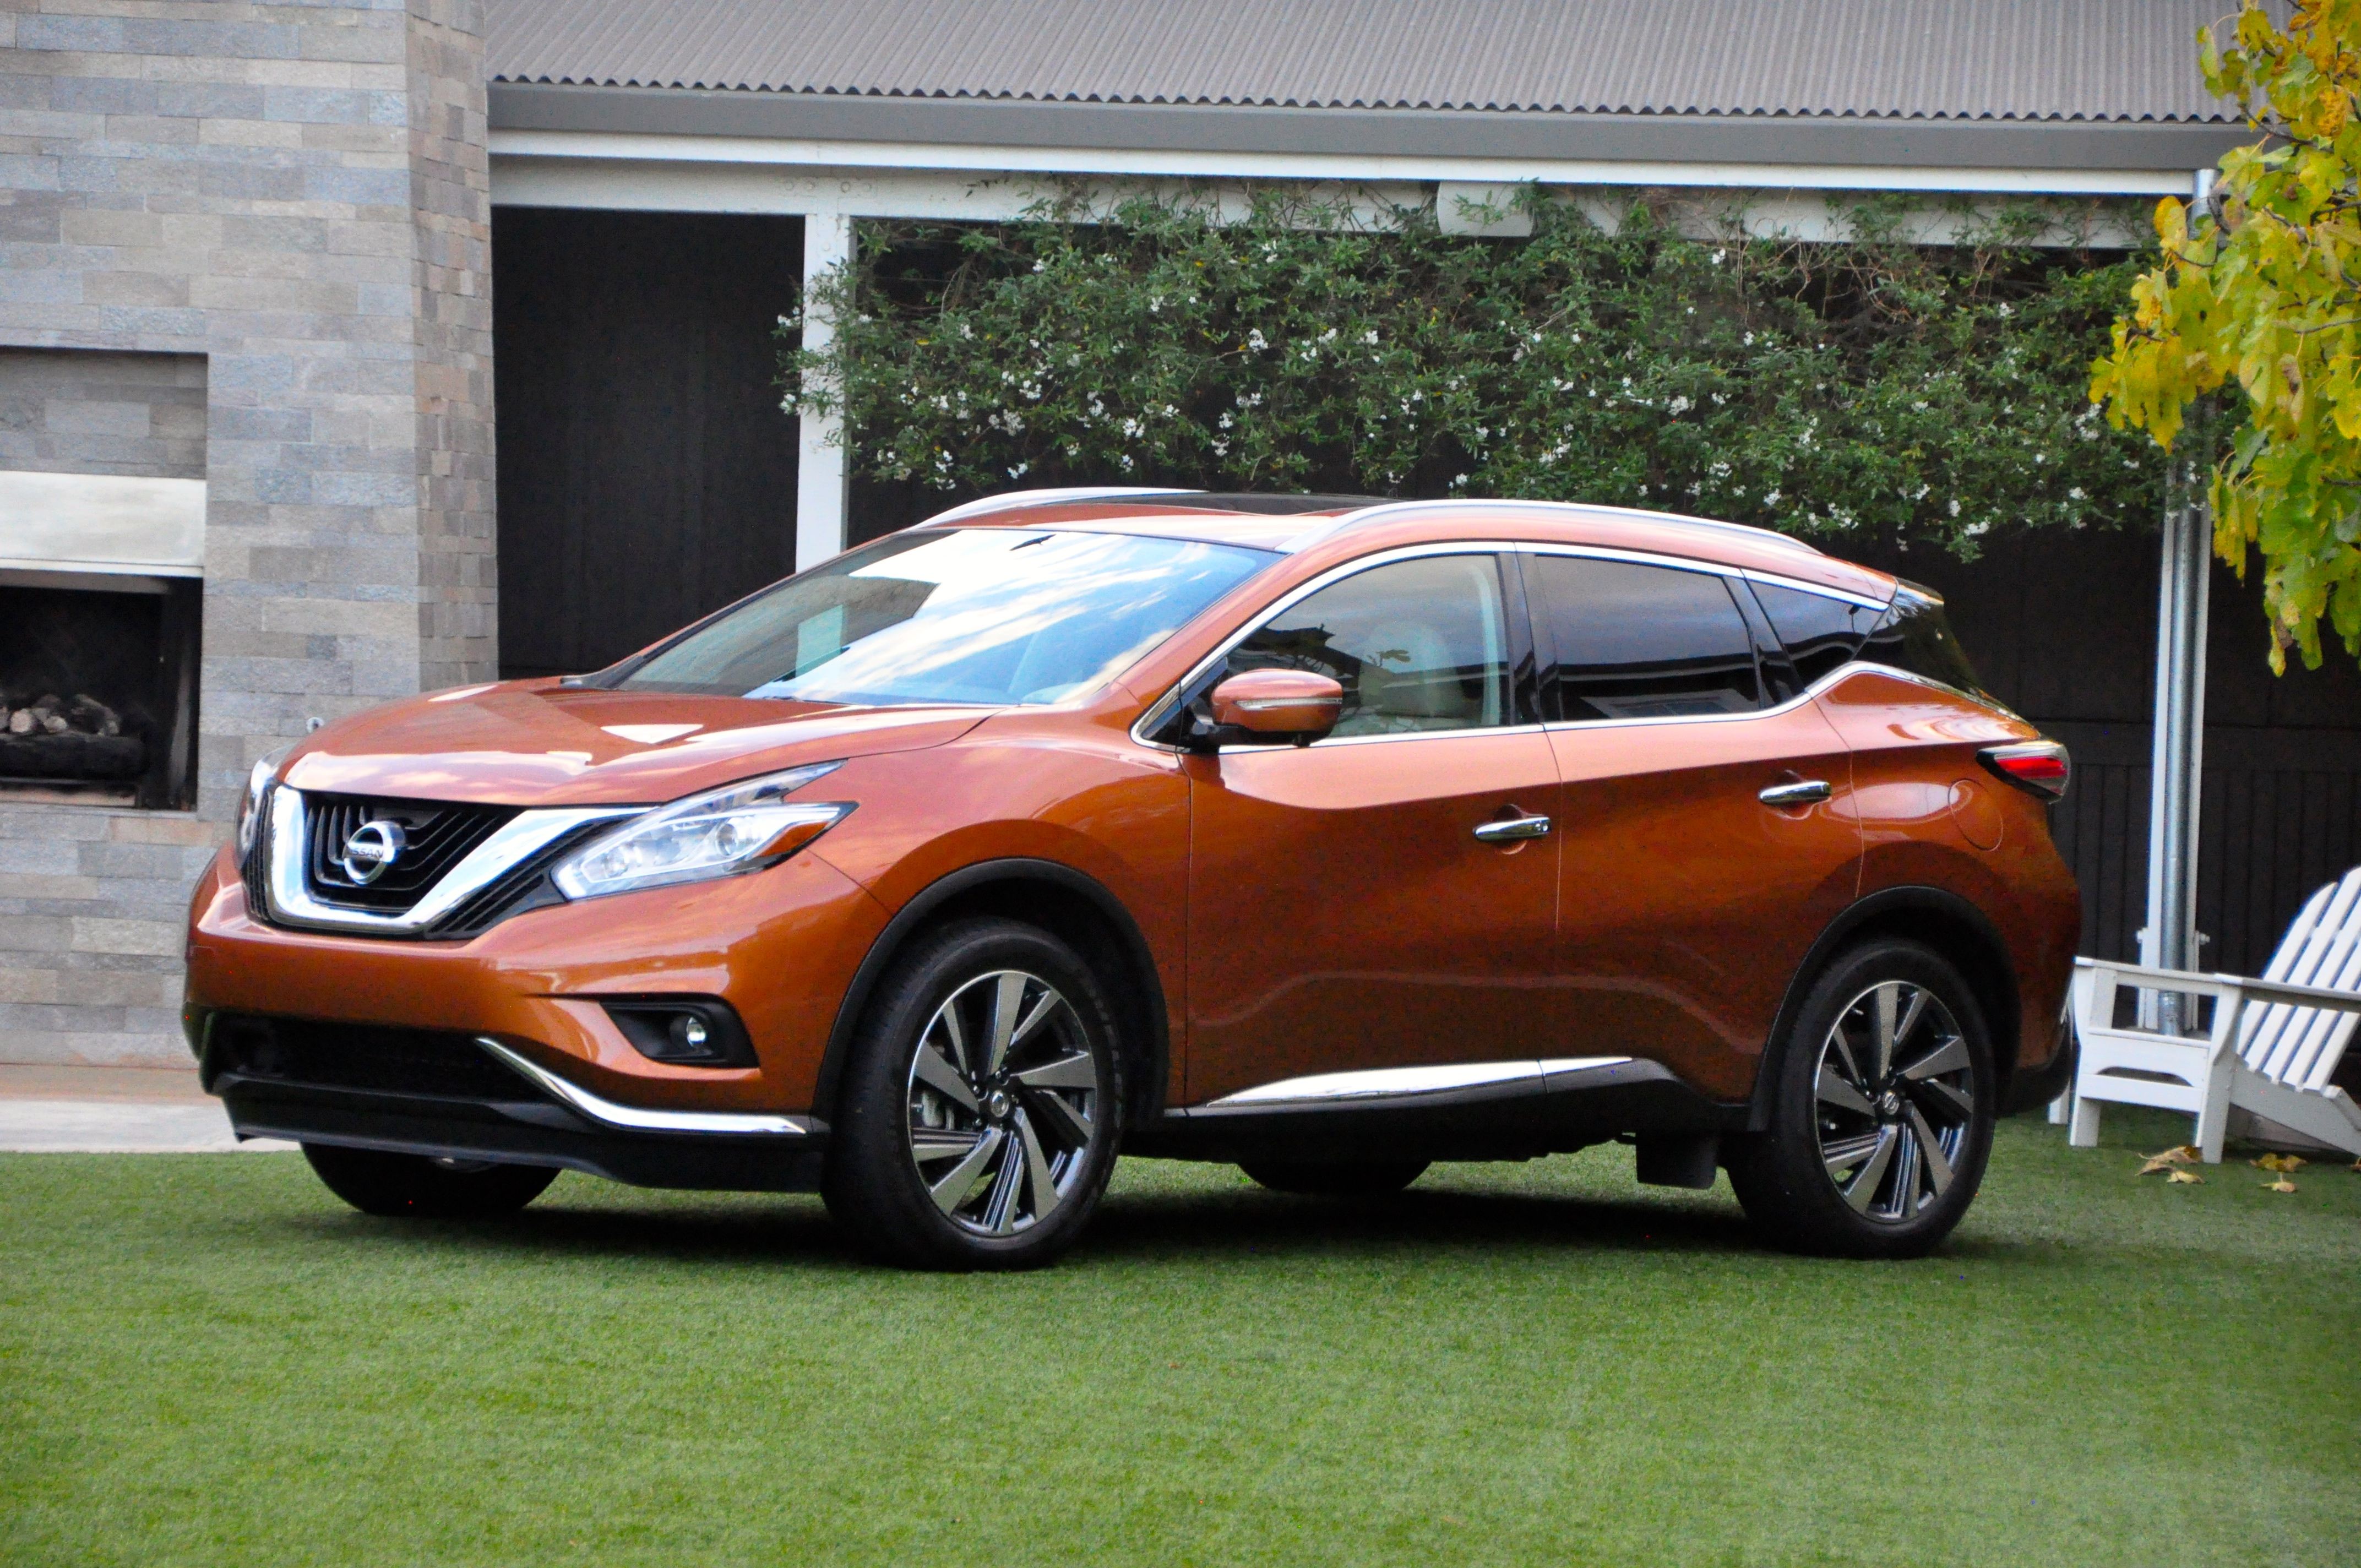 2015 nissan murano first look and review frequent business traveler. Black Bedroom Furniture Sets. Home Design Ideas